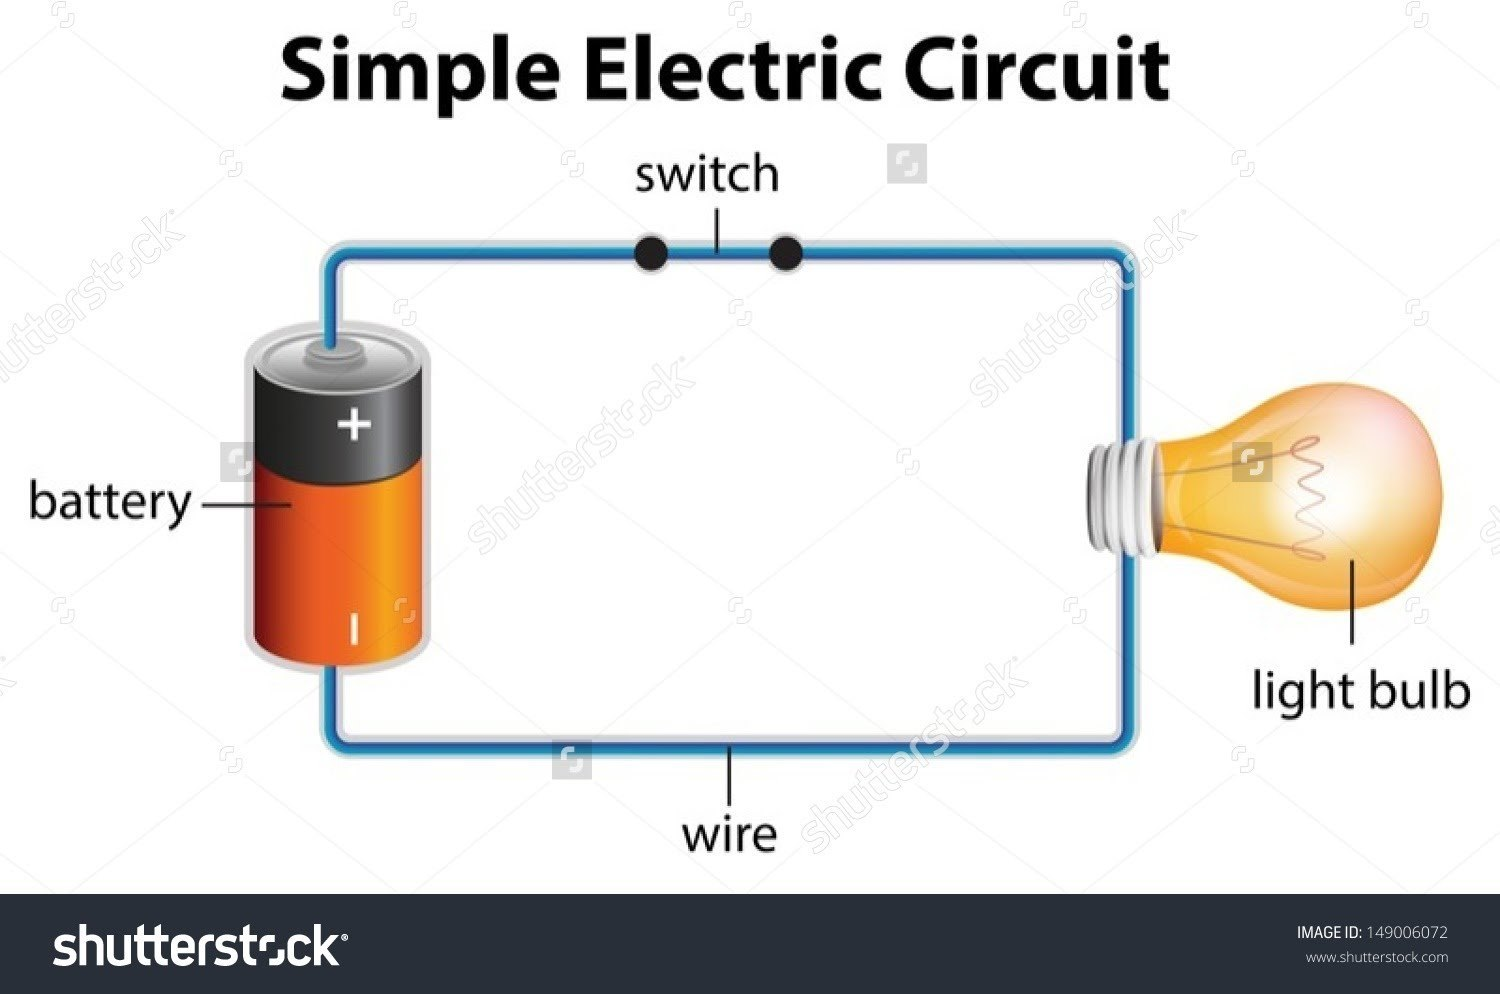 Mention The Condition Under Which Charges Can Move In A Cconductor Electriccircuit2jpg Download